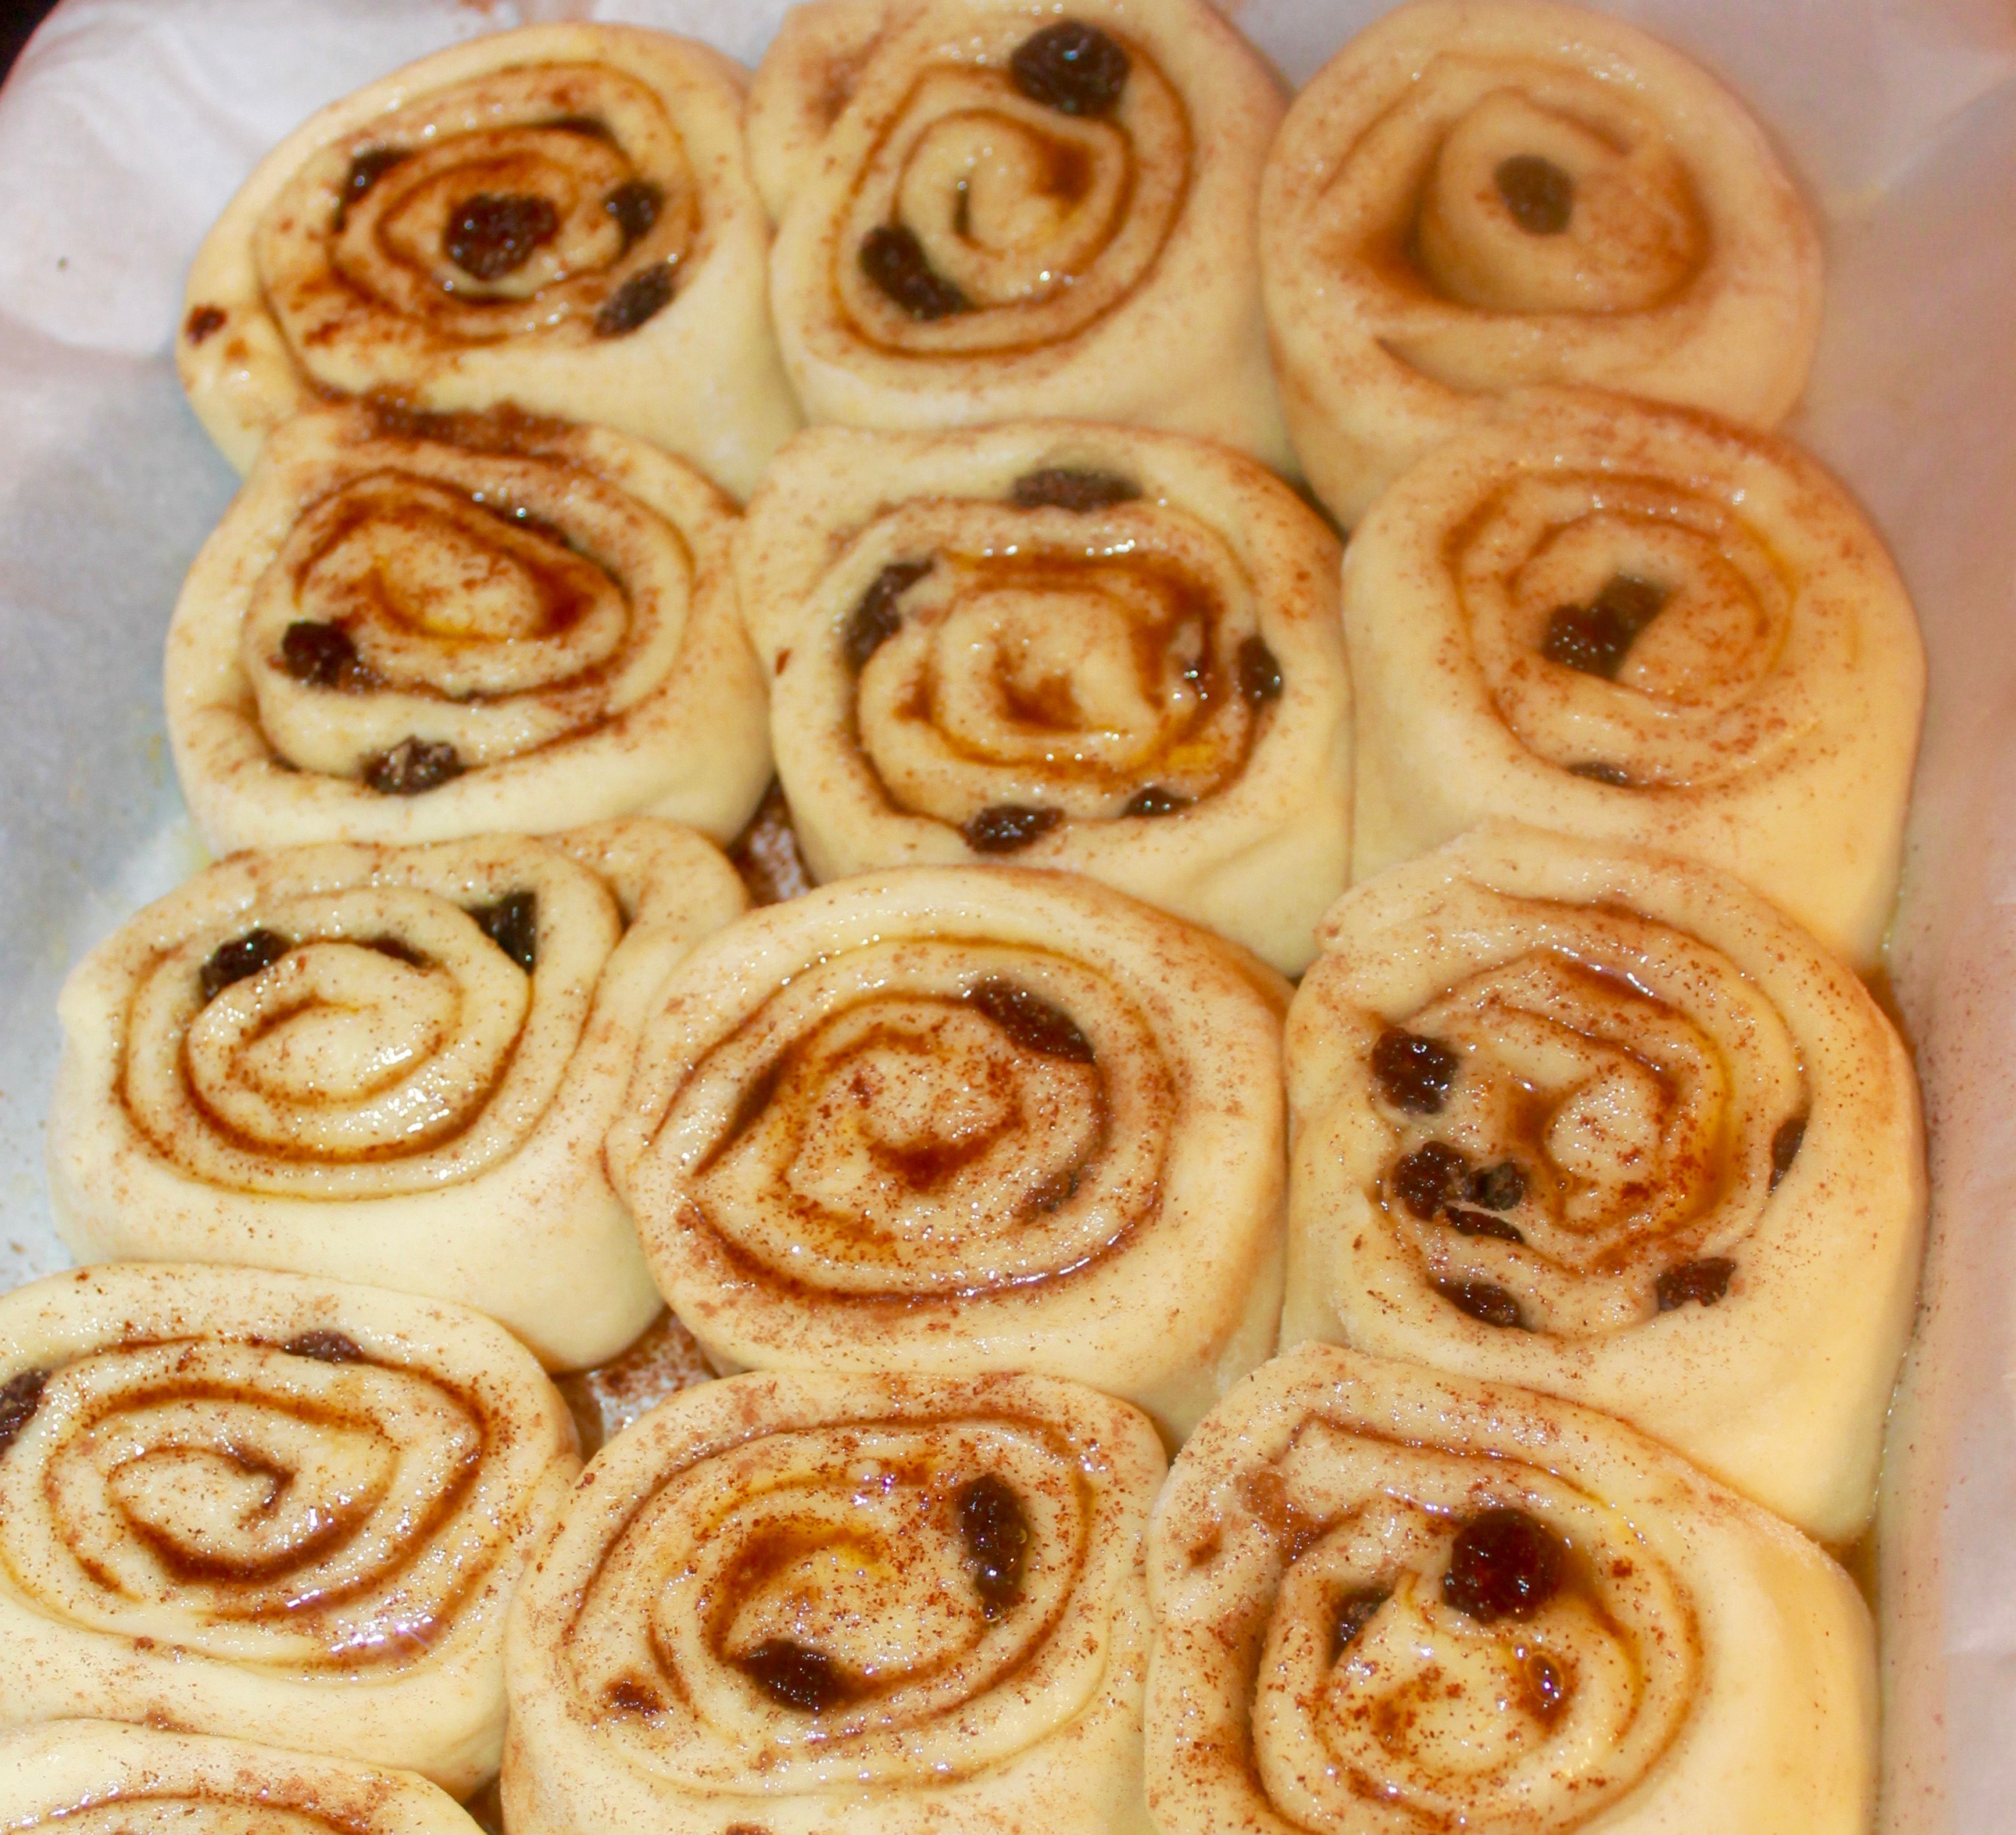 How to make cinnamon rolls #cinnamon rolls #homemadecinnamon rolls #southernlove#southernrecipes